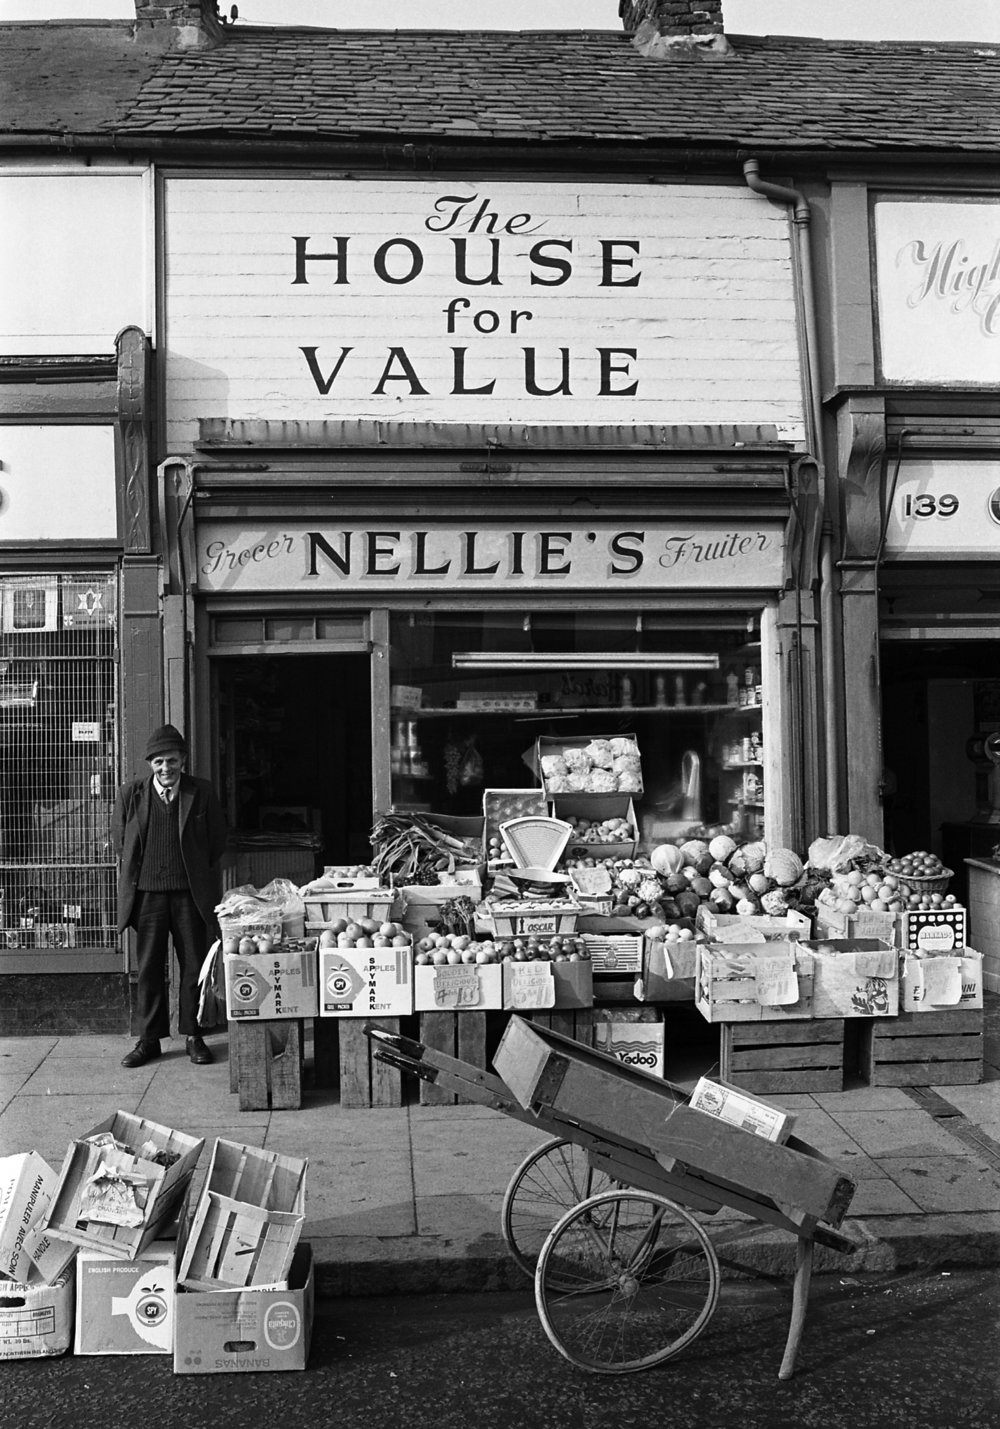 SR1974 - 66 Tom Perry at Nellie's Perry's shop.jpg